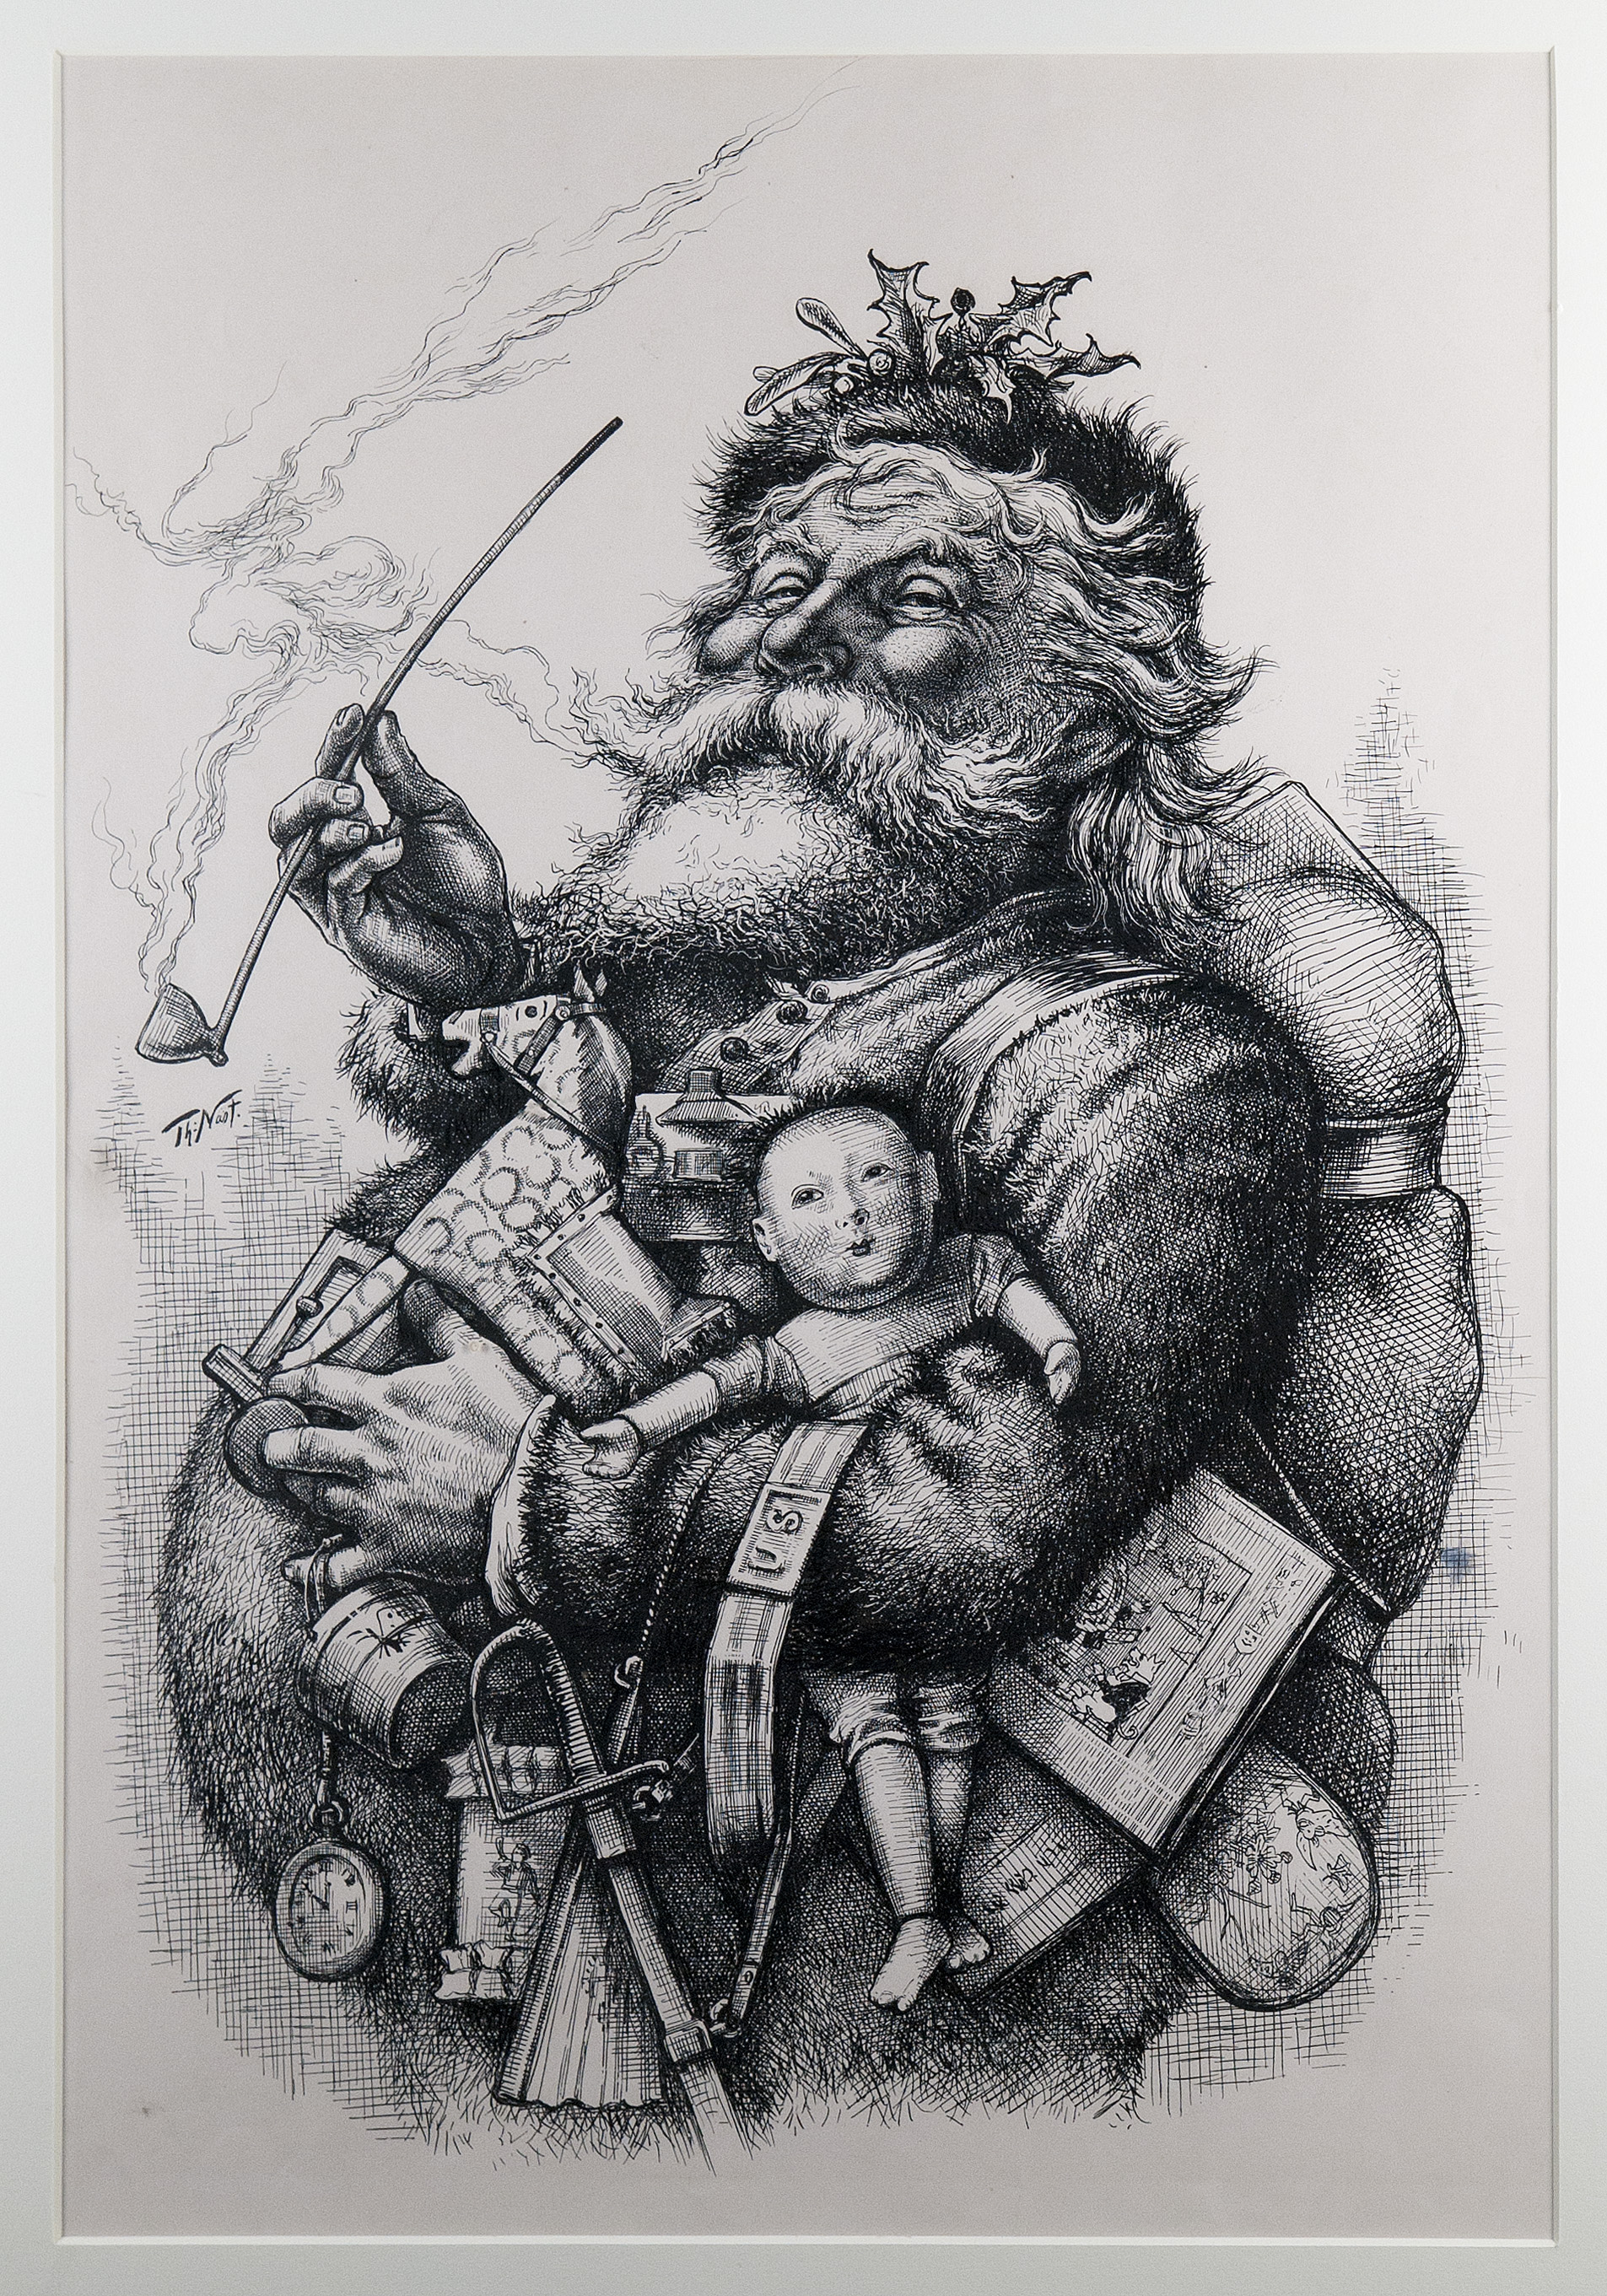 """Visions of Santa Claus: Iconic Christmas Illustrations by Thomas Nast"" at Macculloch Hall Historical Museum"